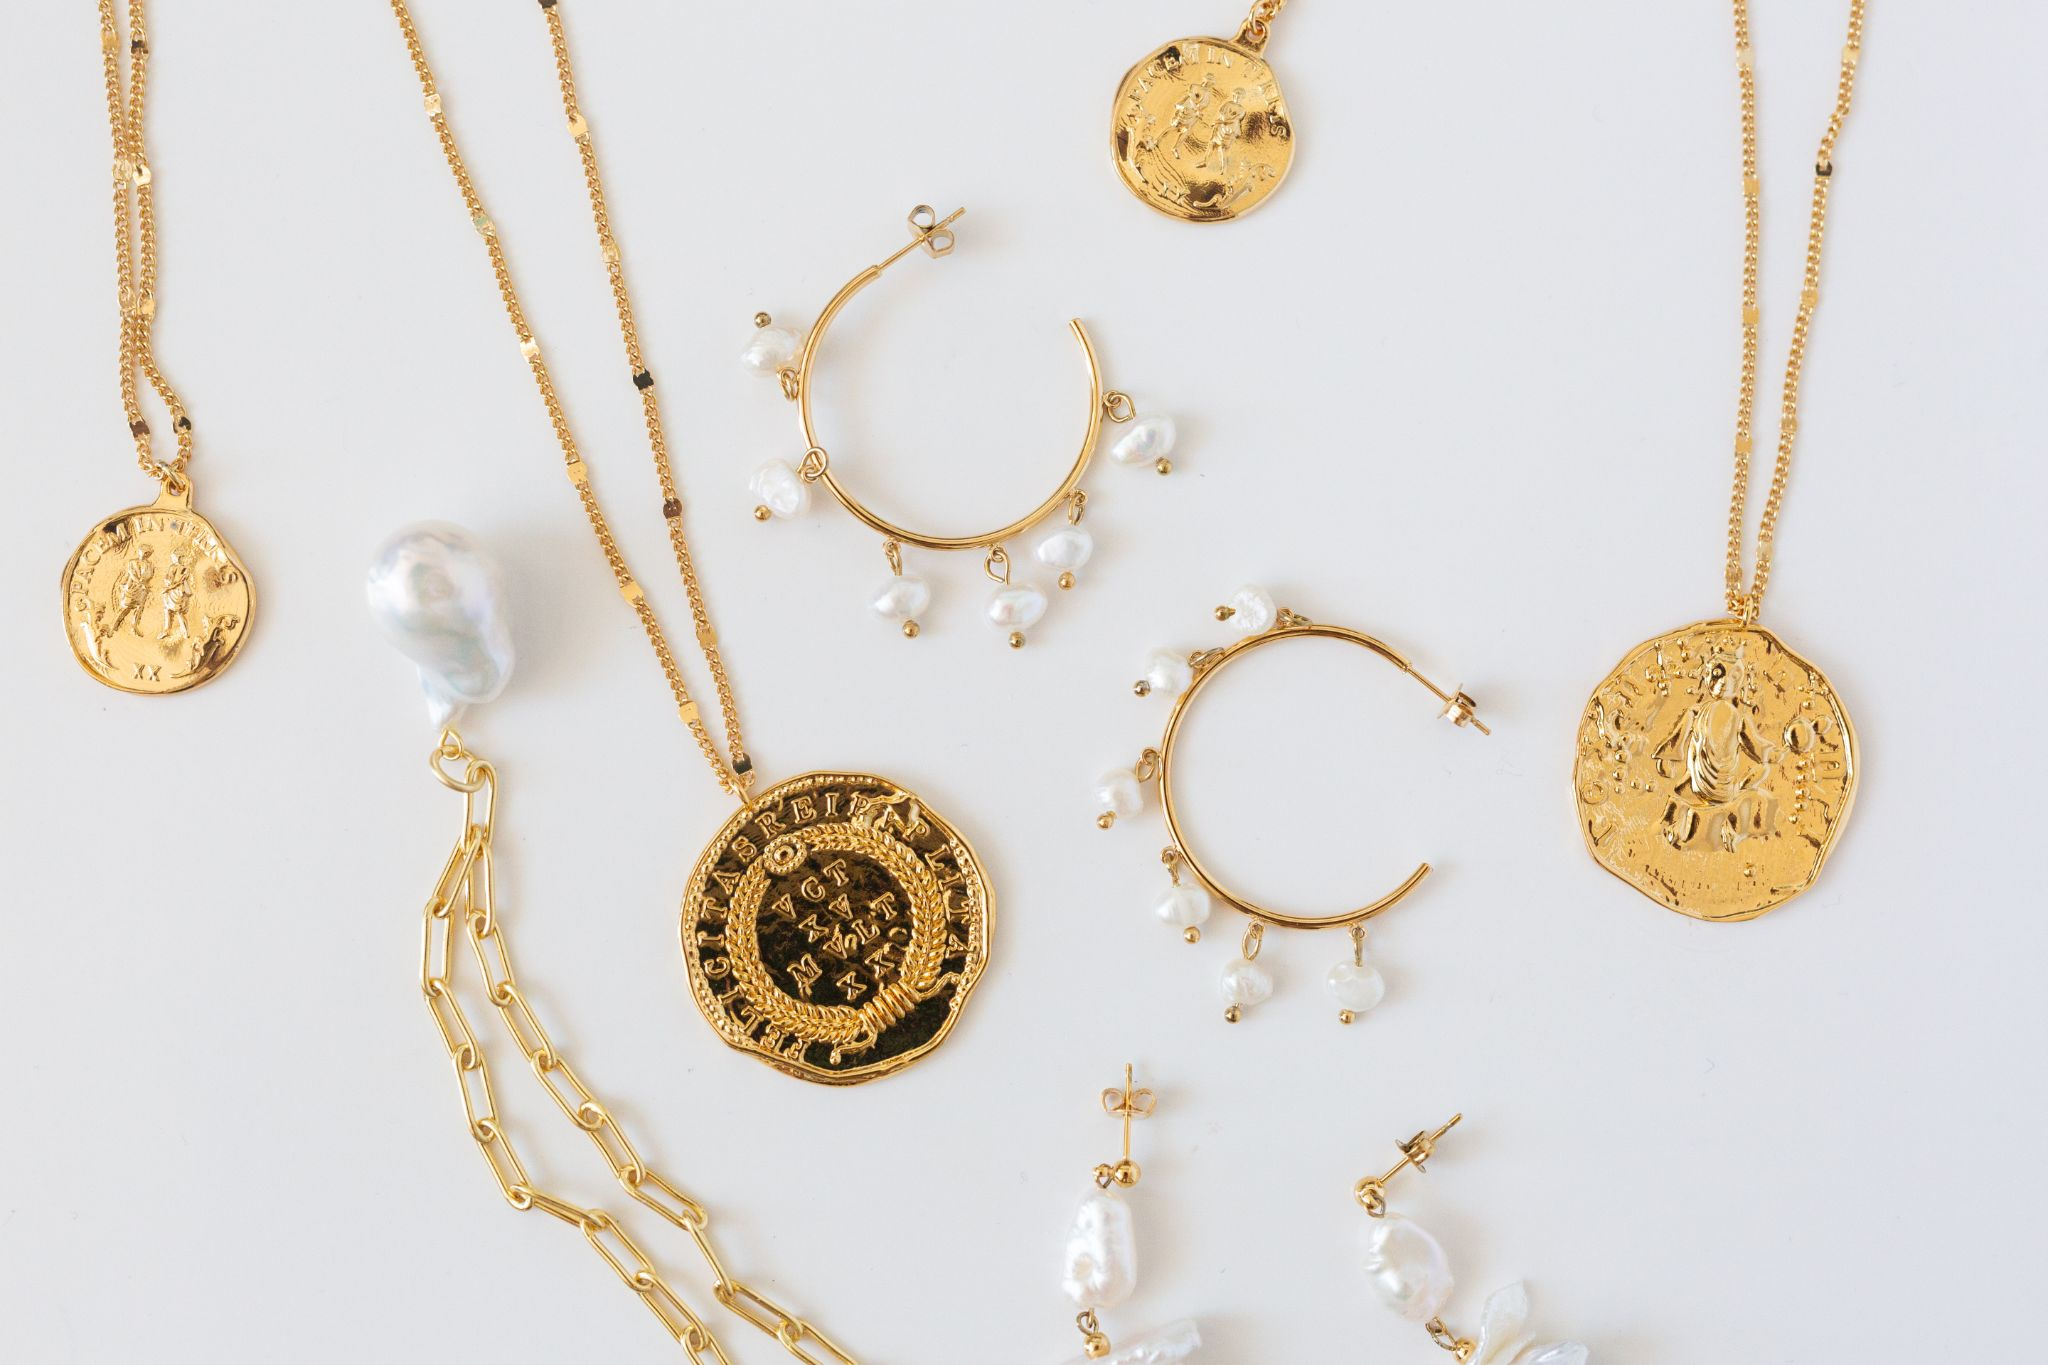 A variety of jewelry pieces that you can sell for instant cash at a pawn shop near you such as West Covina Pawn & Loans.